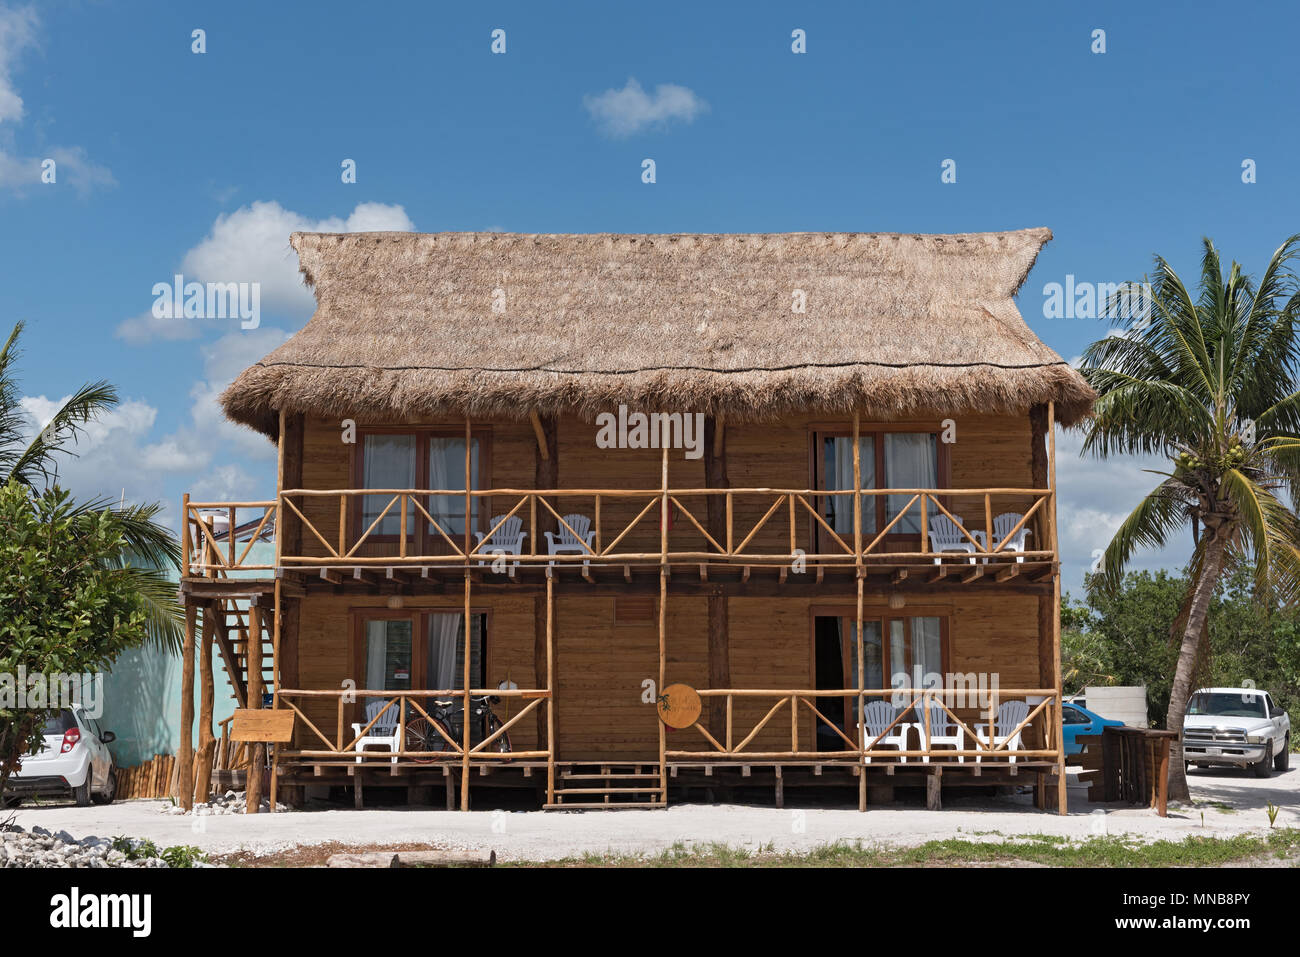 wooden house in the center of mahahual, quintana roo, mexico - Stock Image